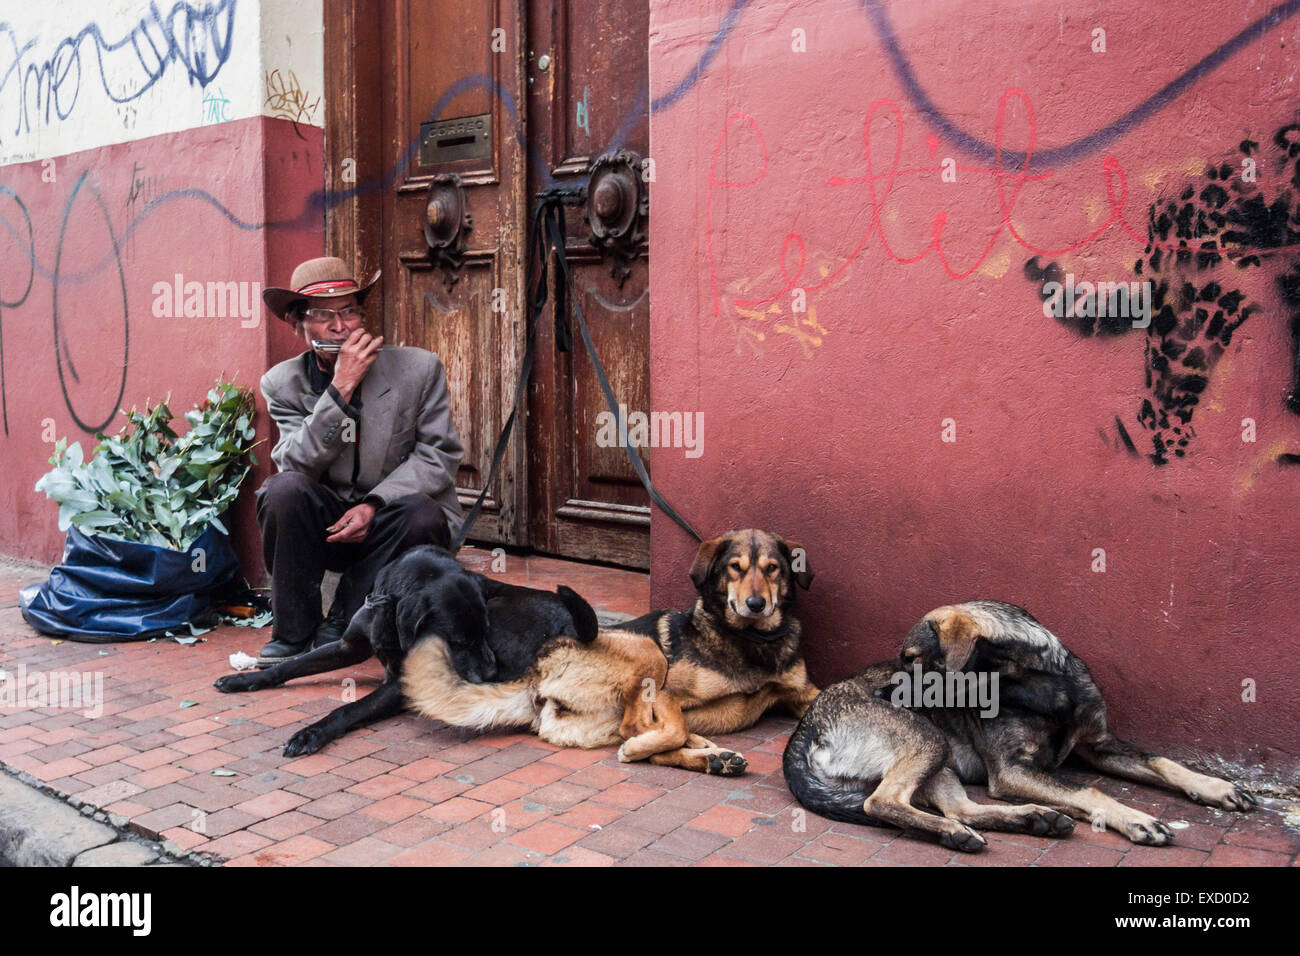 A street musician and his dogs in the Candelaria district of Bogota, Colombia. - Stock Image